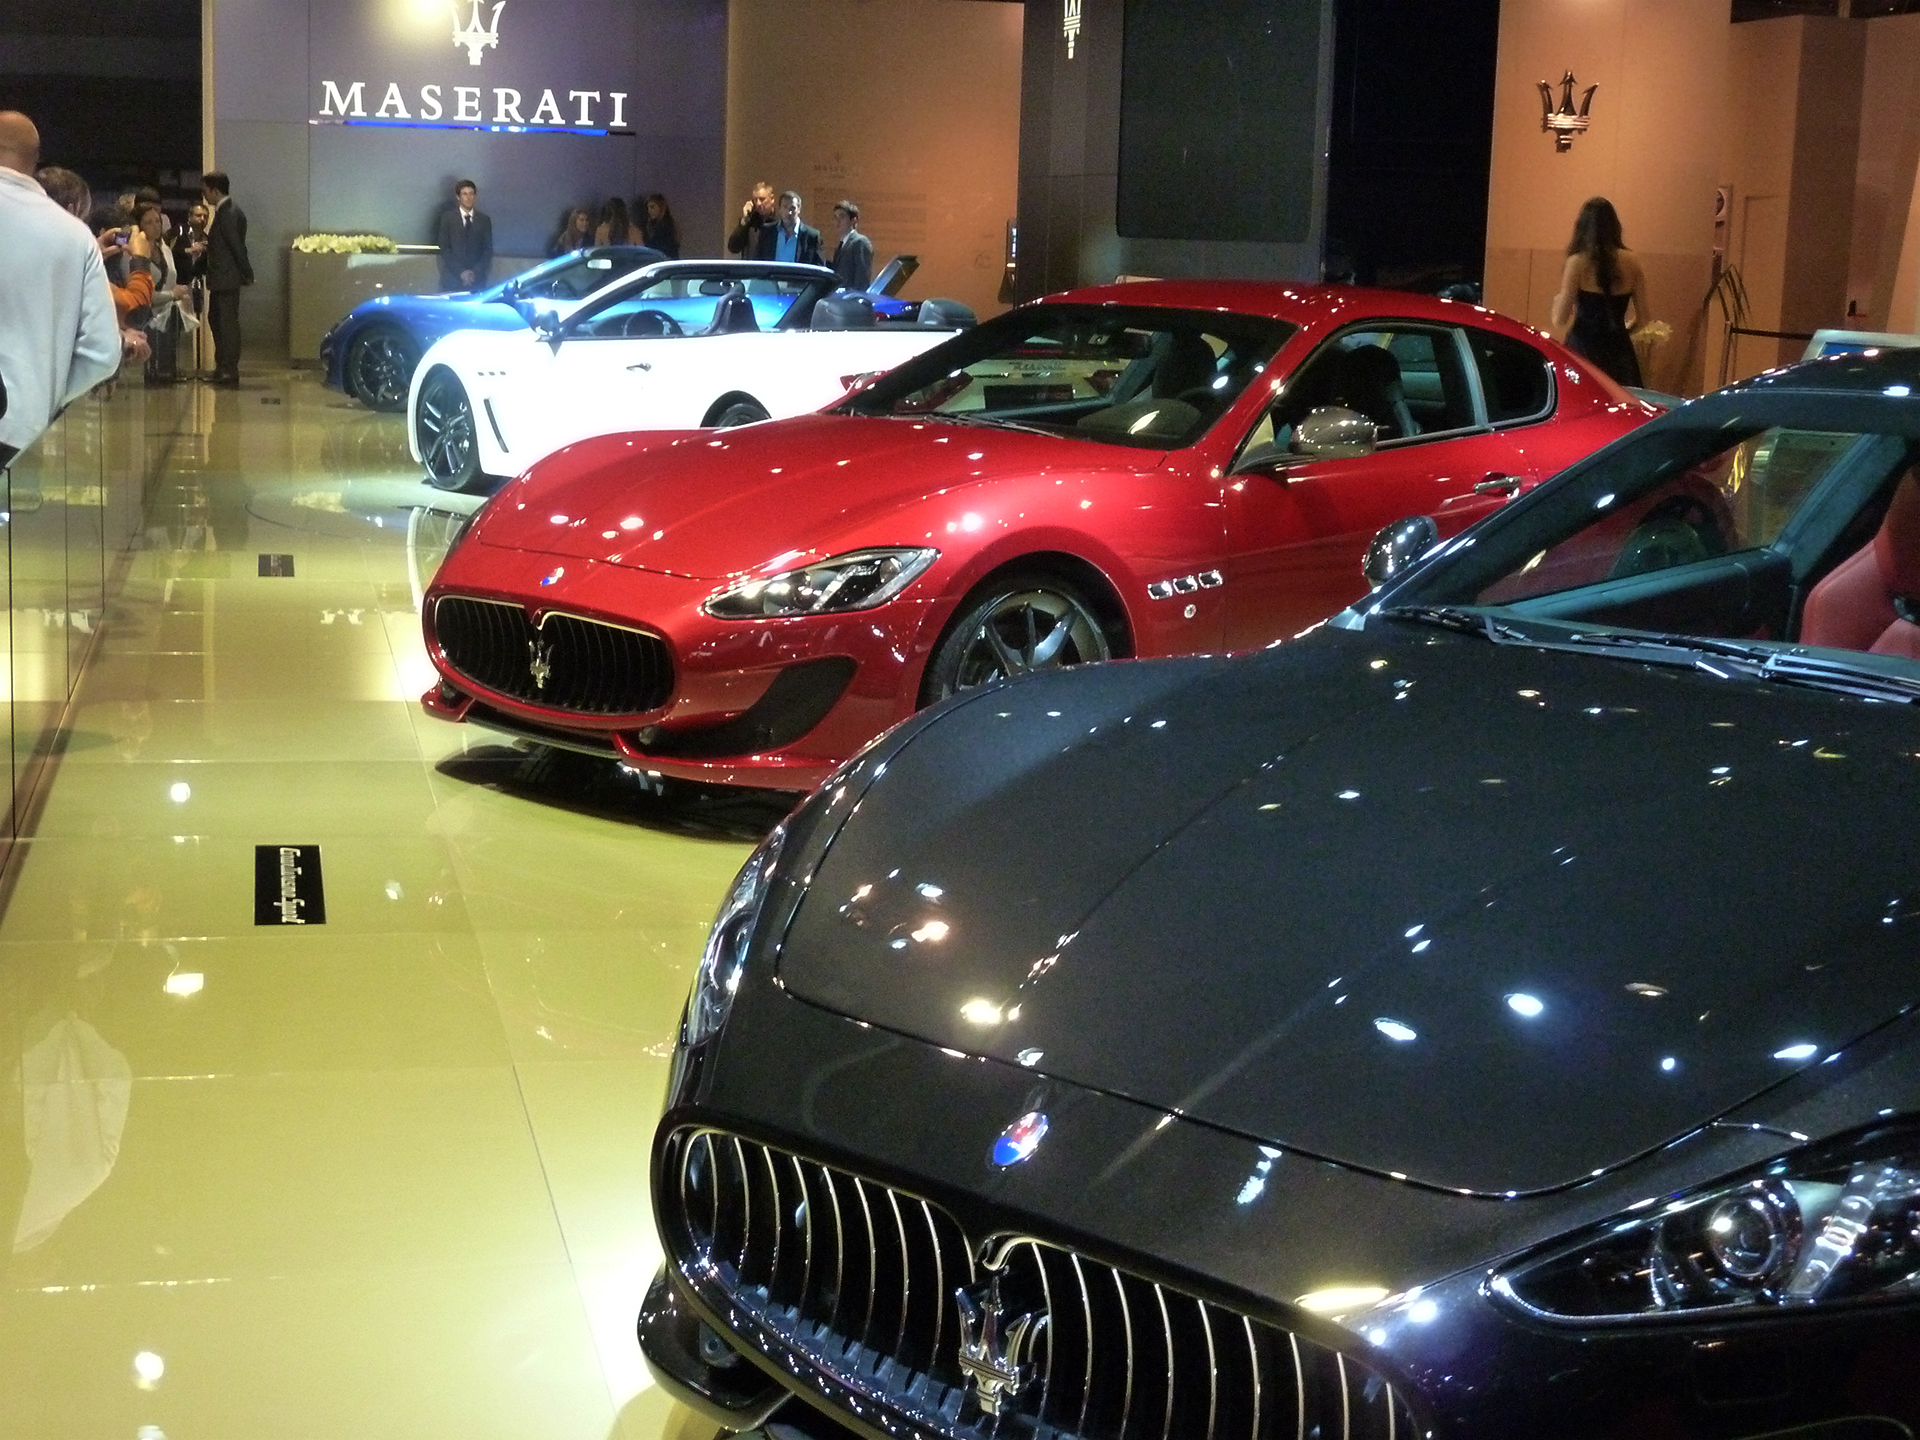 Maserati-fronts-stand-2012-Mondial-Automobile-photo-elj-dm